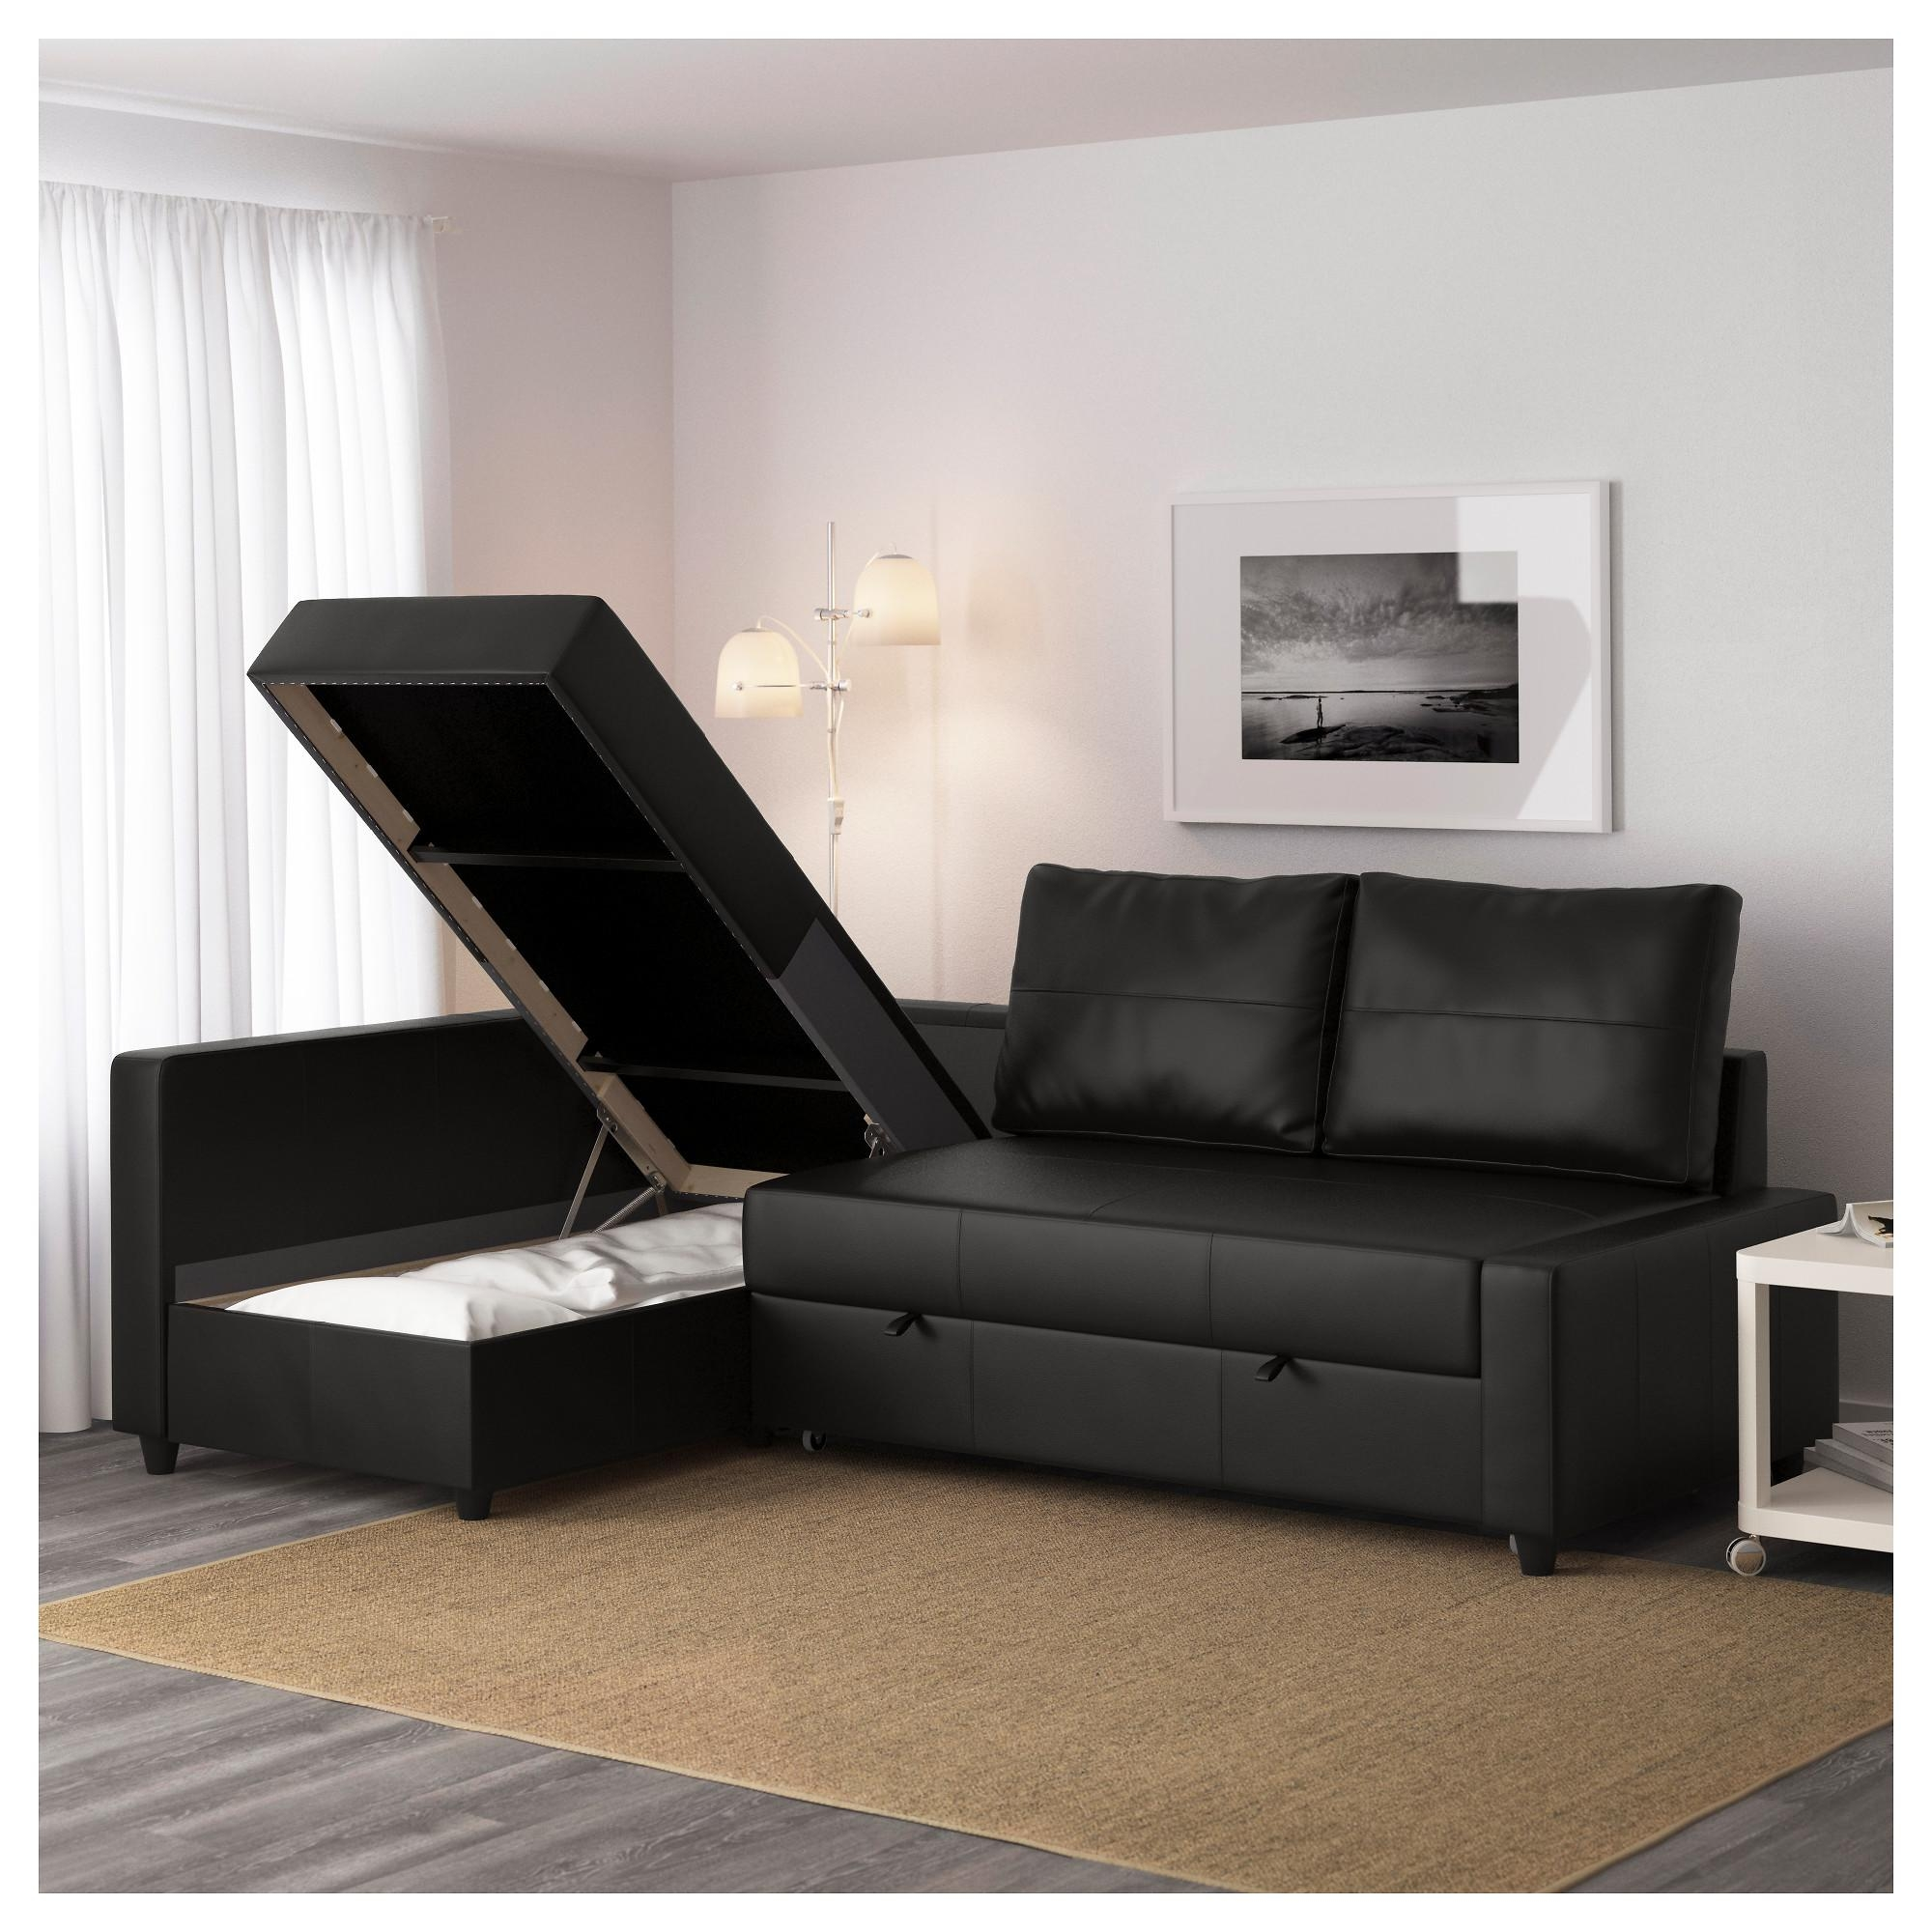 Friheten Sleeper Sectional,3 Seat W/storage – Skiftebo Dark Gray In Ikea Sectional Sofa Bed (Image 4 of 20)